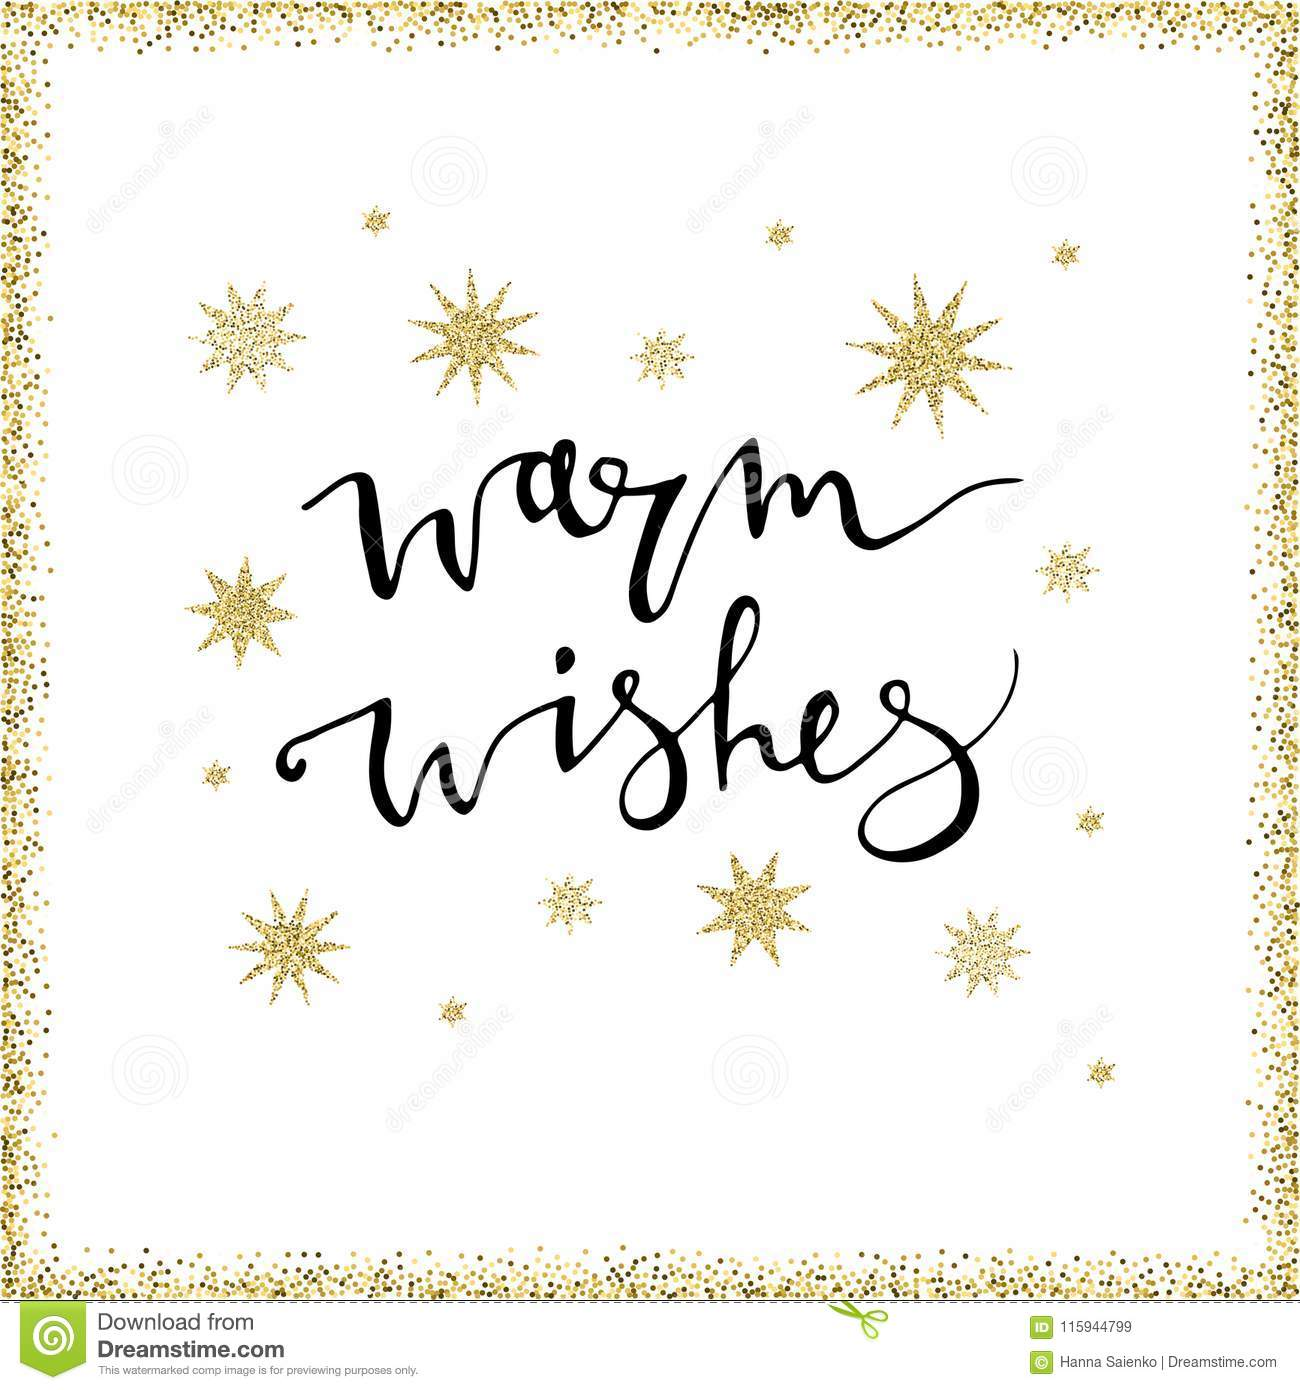 Warm wishes handmade lettering with gold glittersnowflakes perfect download comp m4hsunfo